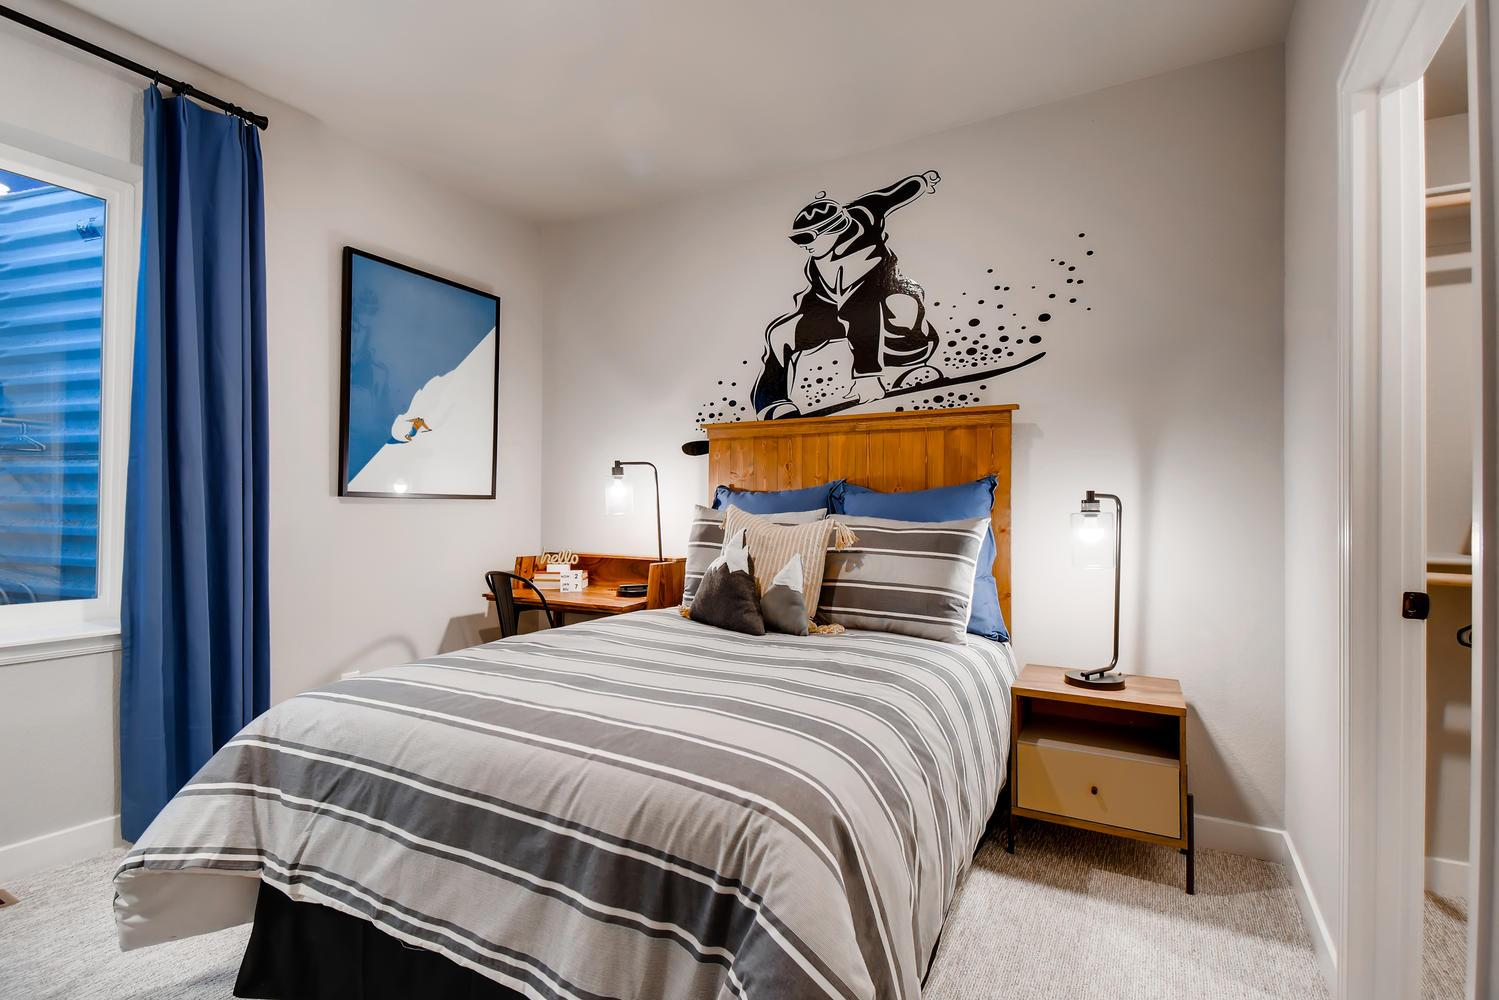 Bedroom featured in the Penrose - Promontory at Todd Creek By RichfieldHomes in Denver, CO